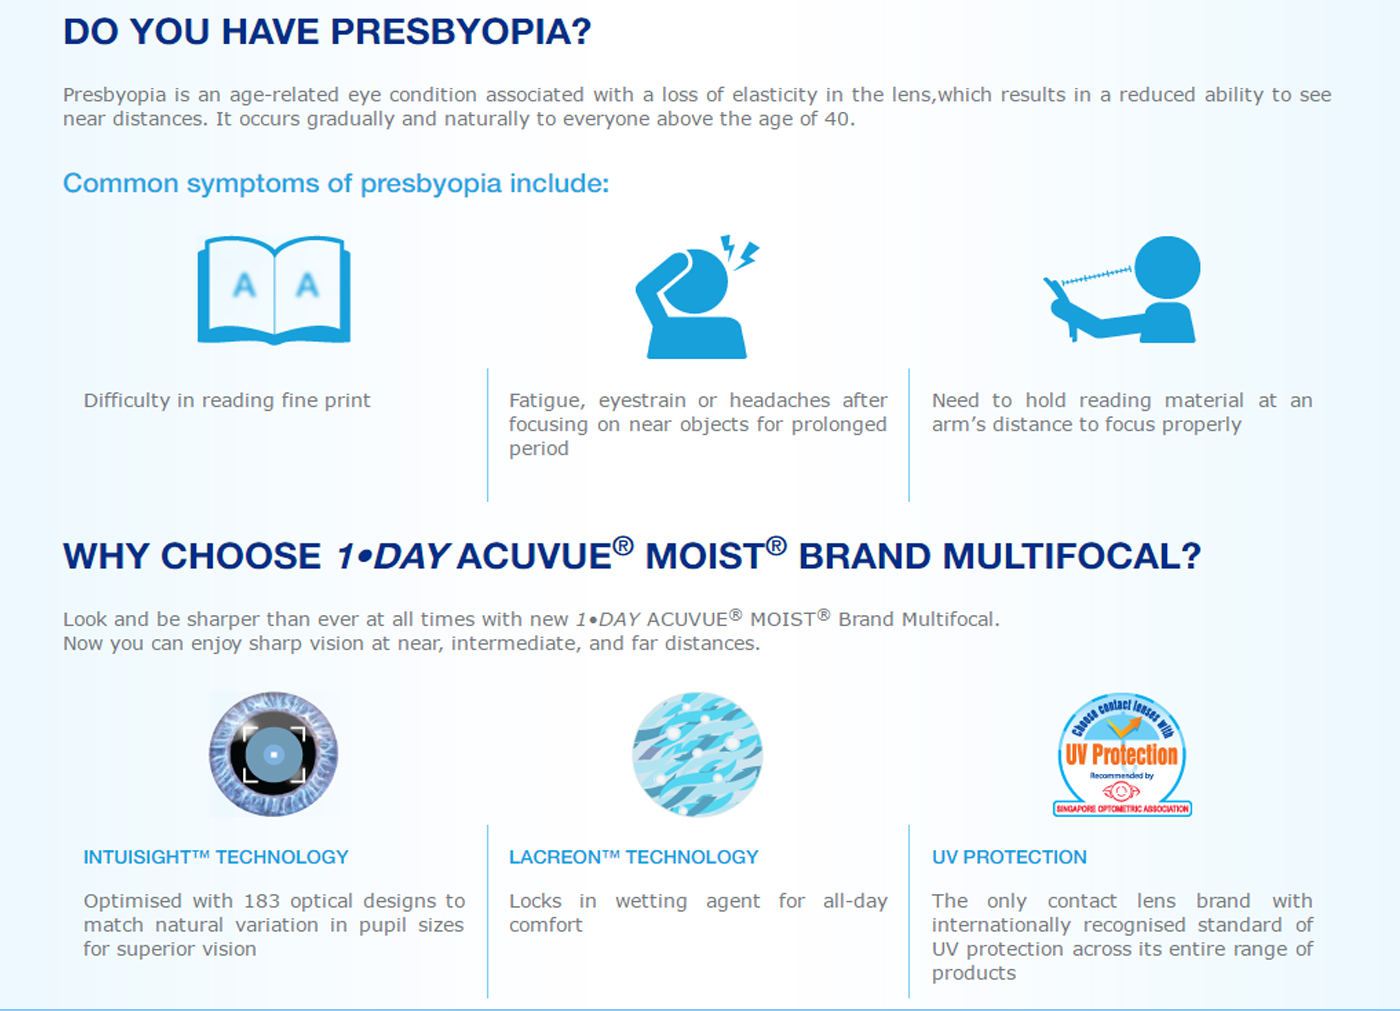 Do you have presbyopia?